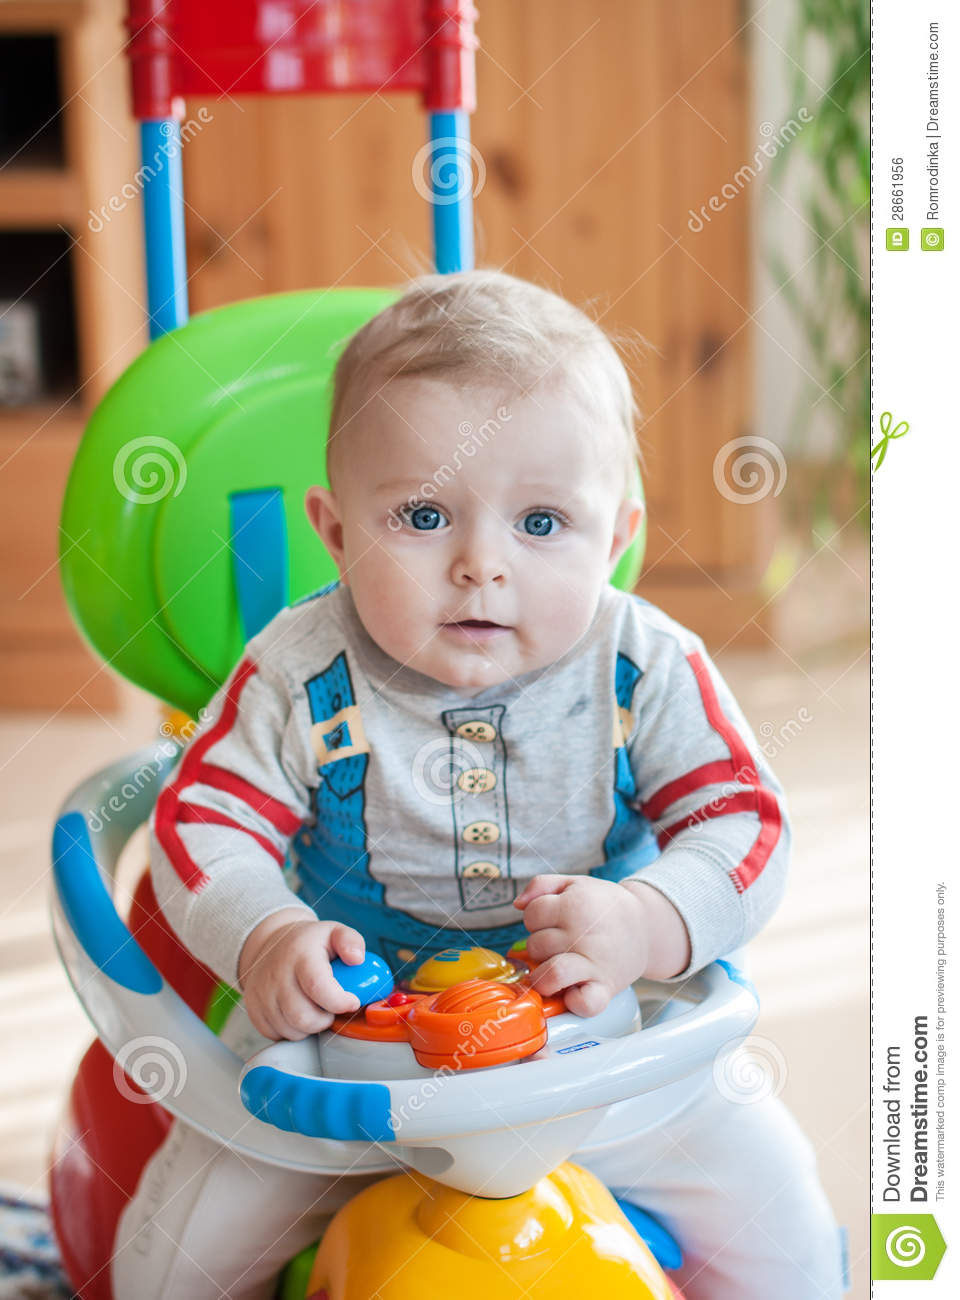 little baby boy in blue big toy car indoor royalty free stock image 28661956. Black Bedroom Furniture Sets. Home Design Ideas